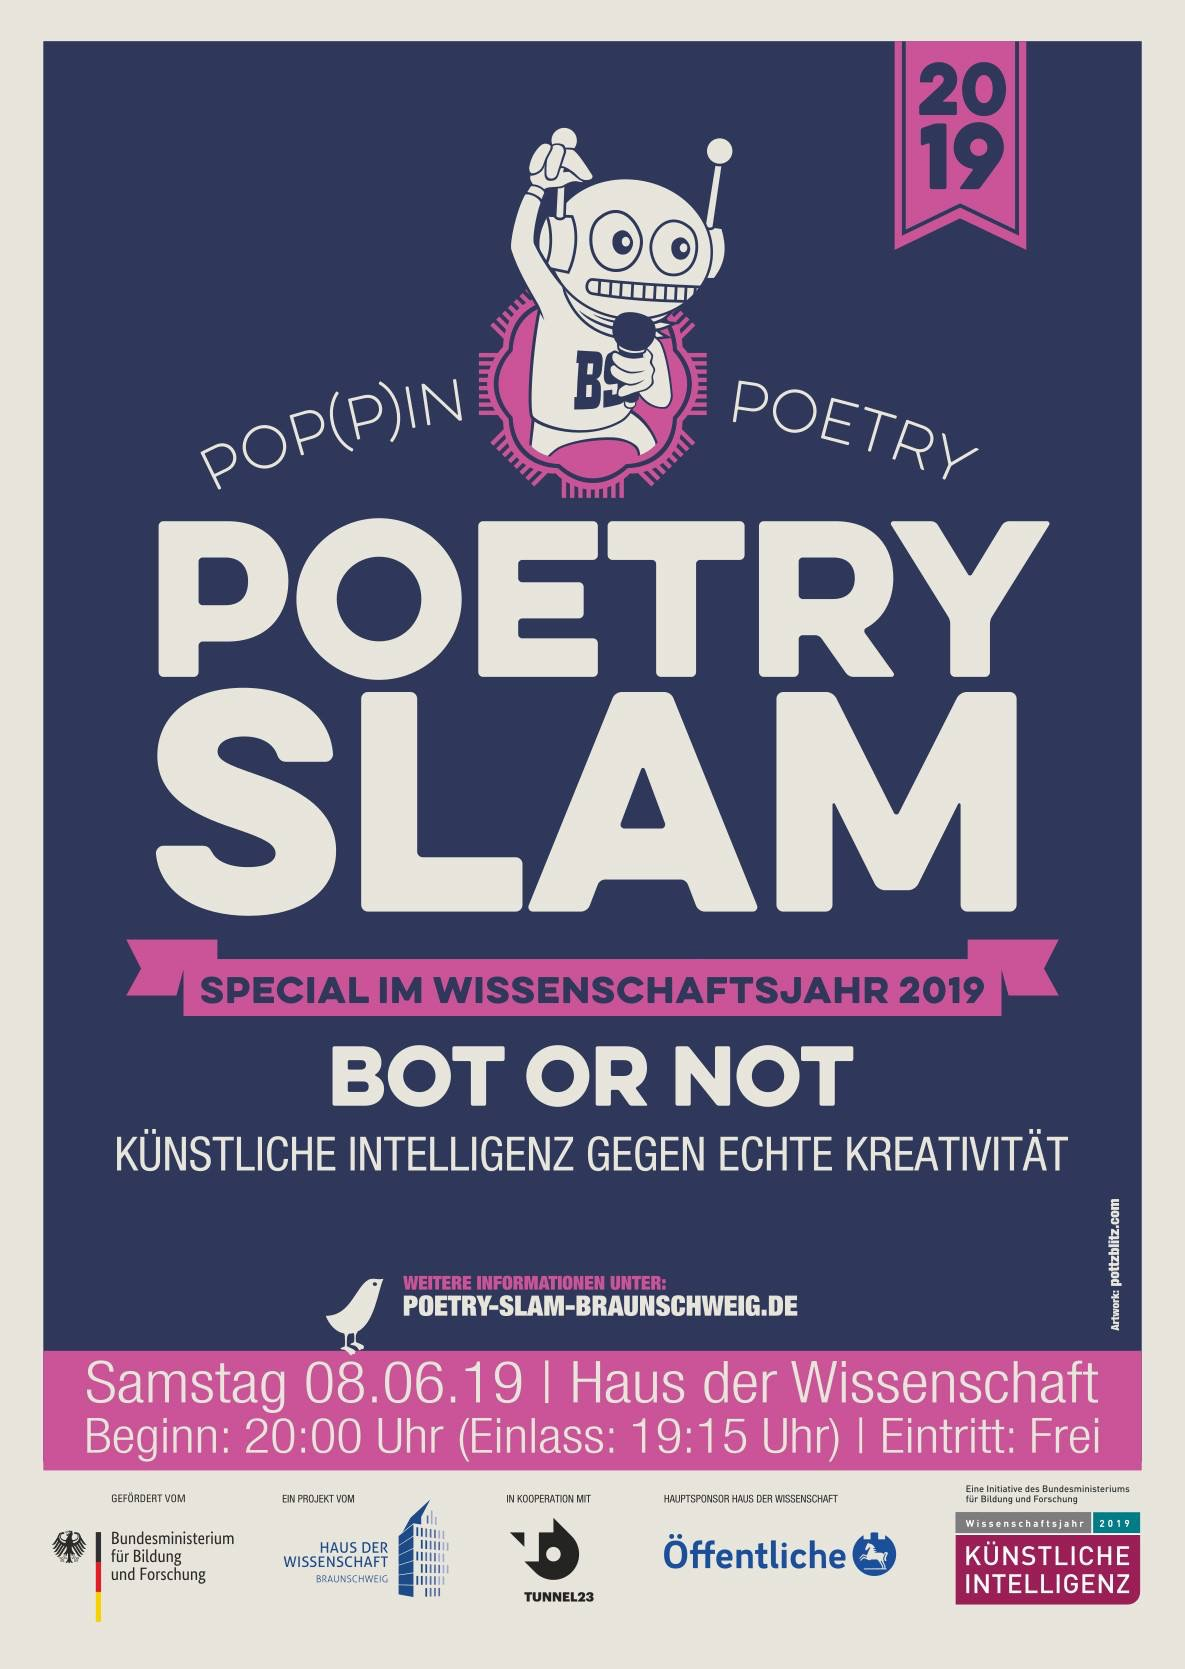 Bot or Not Poetry Slam - KI gegen